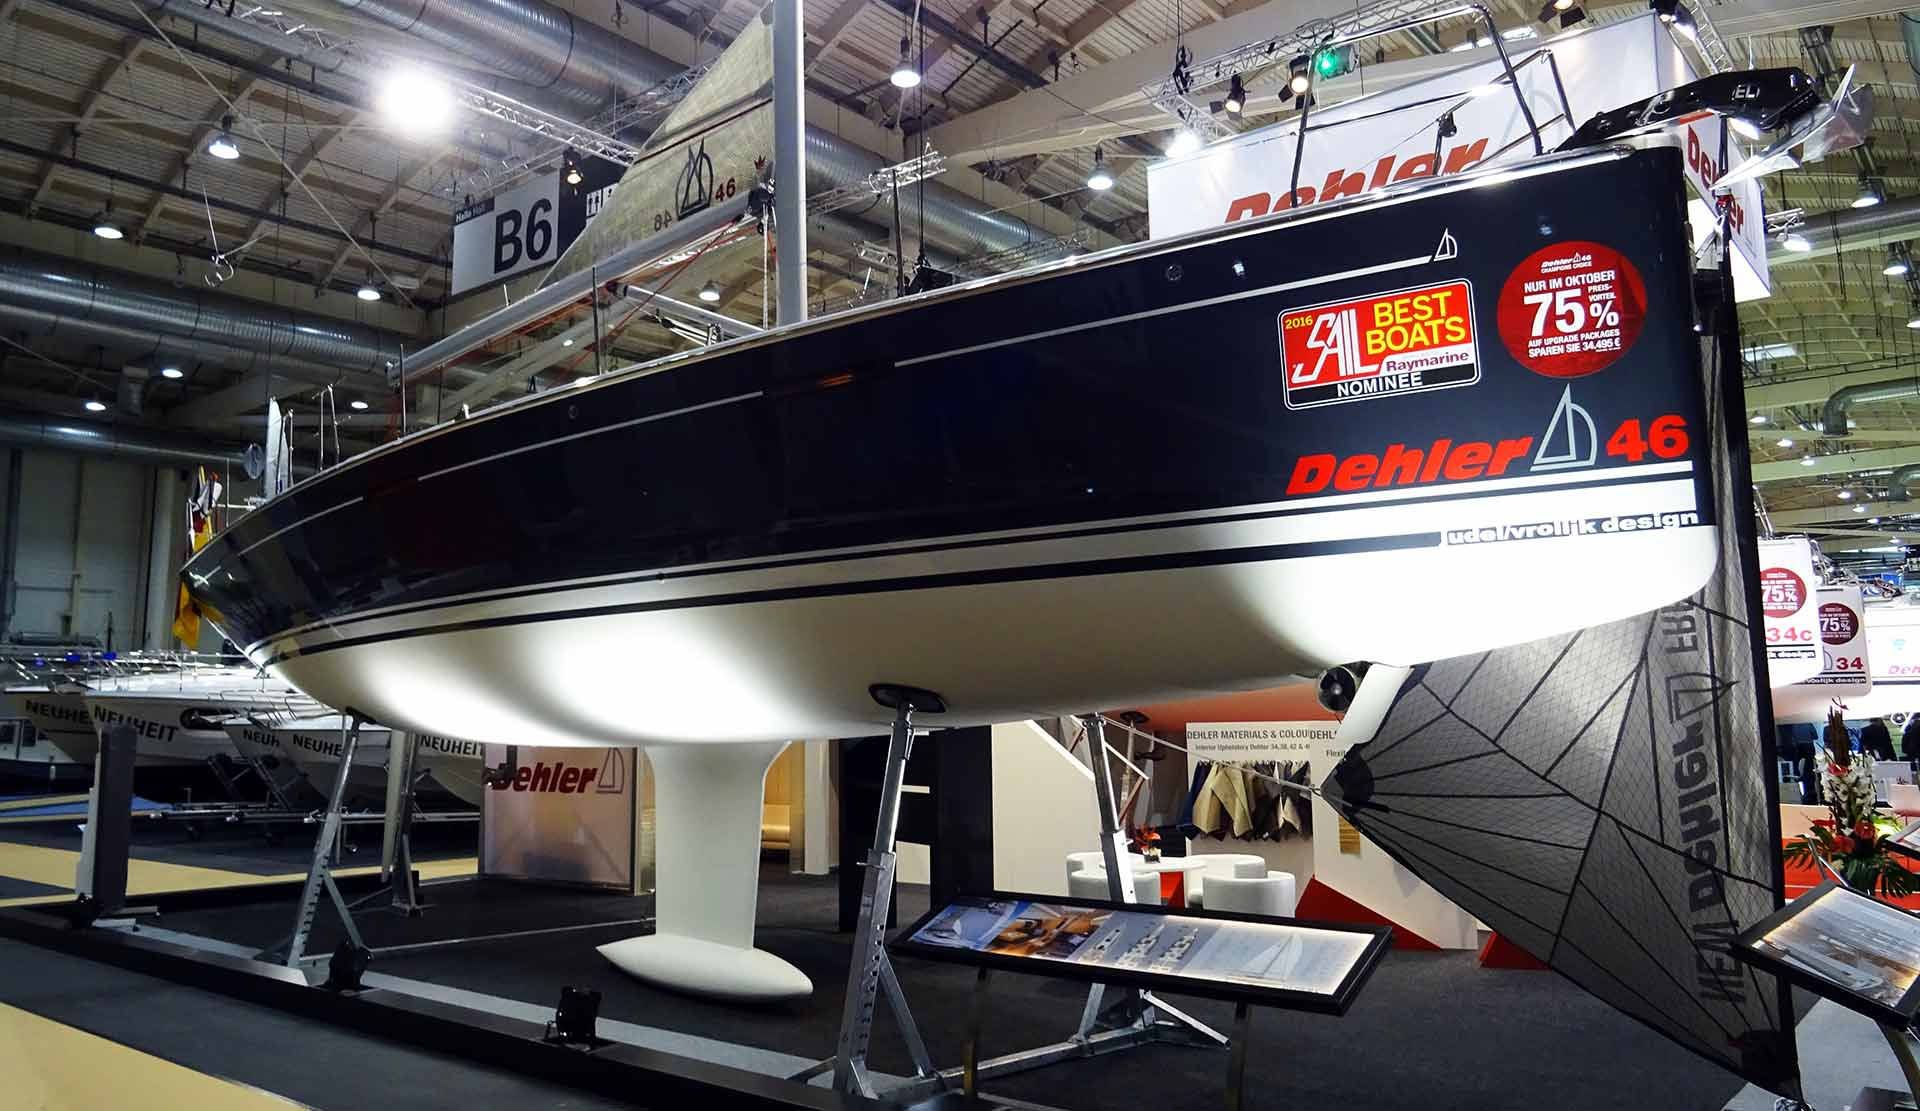 In my eyes the most enthalling boat of the show: The Dehler 46